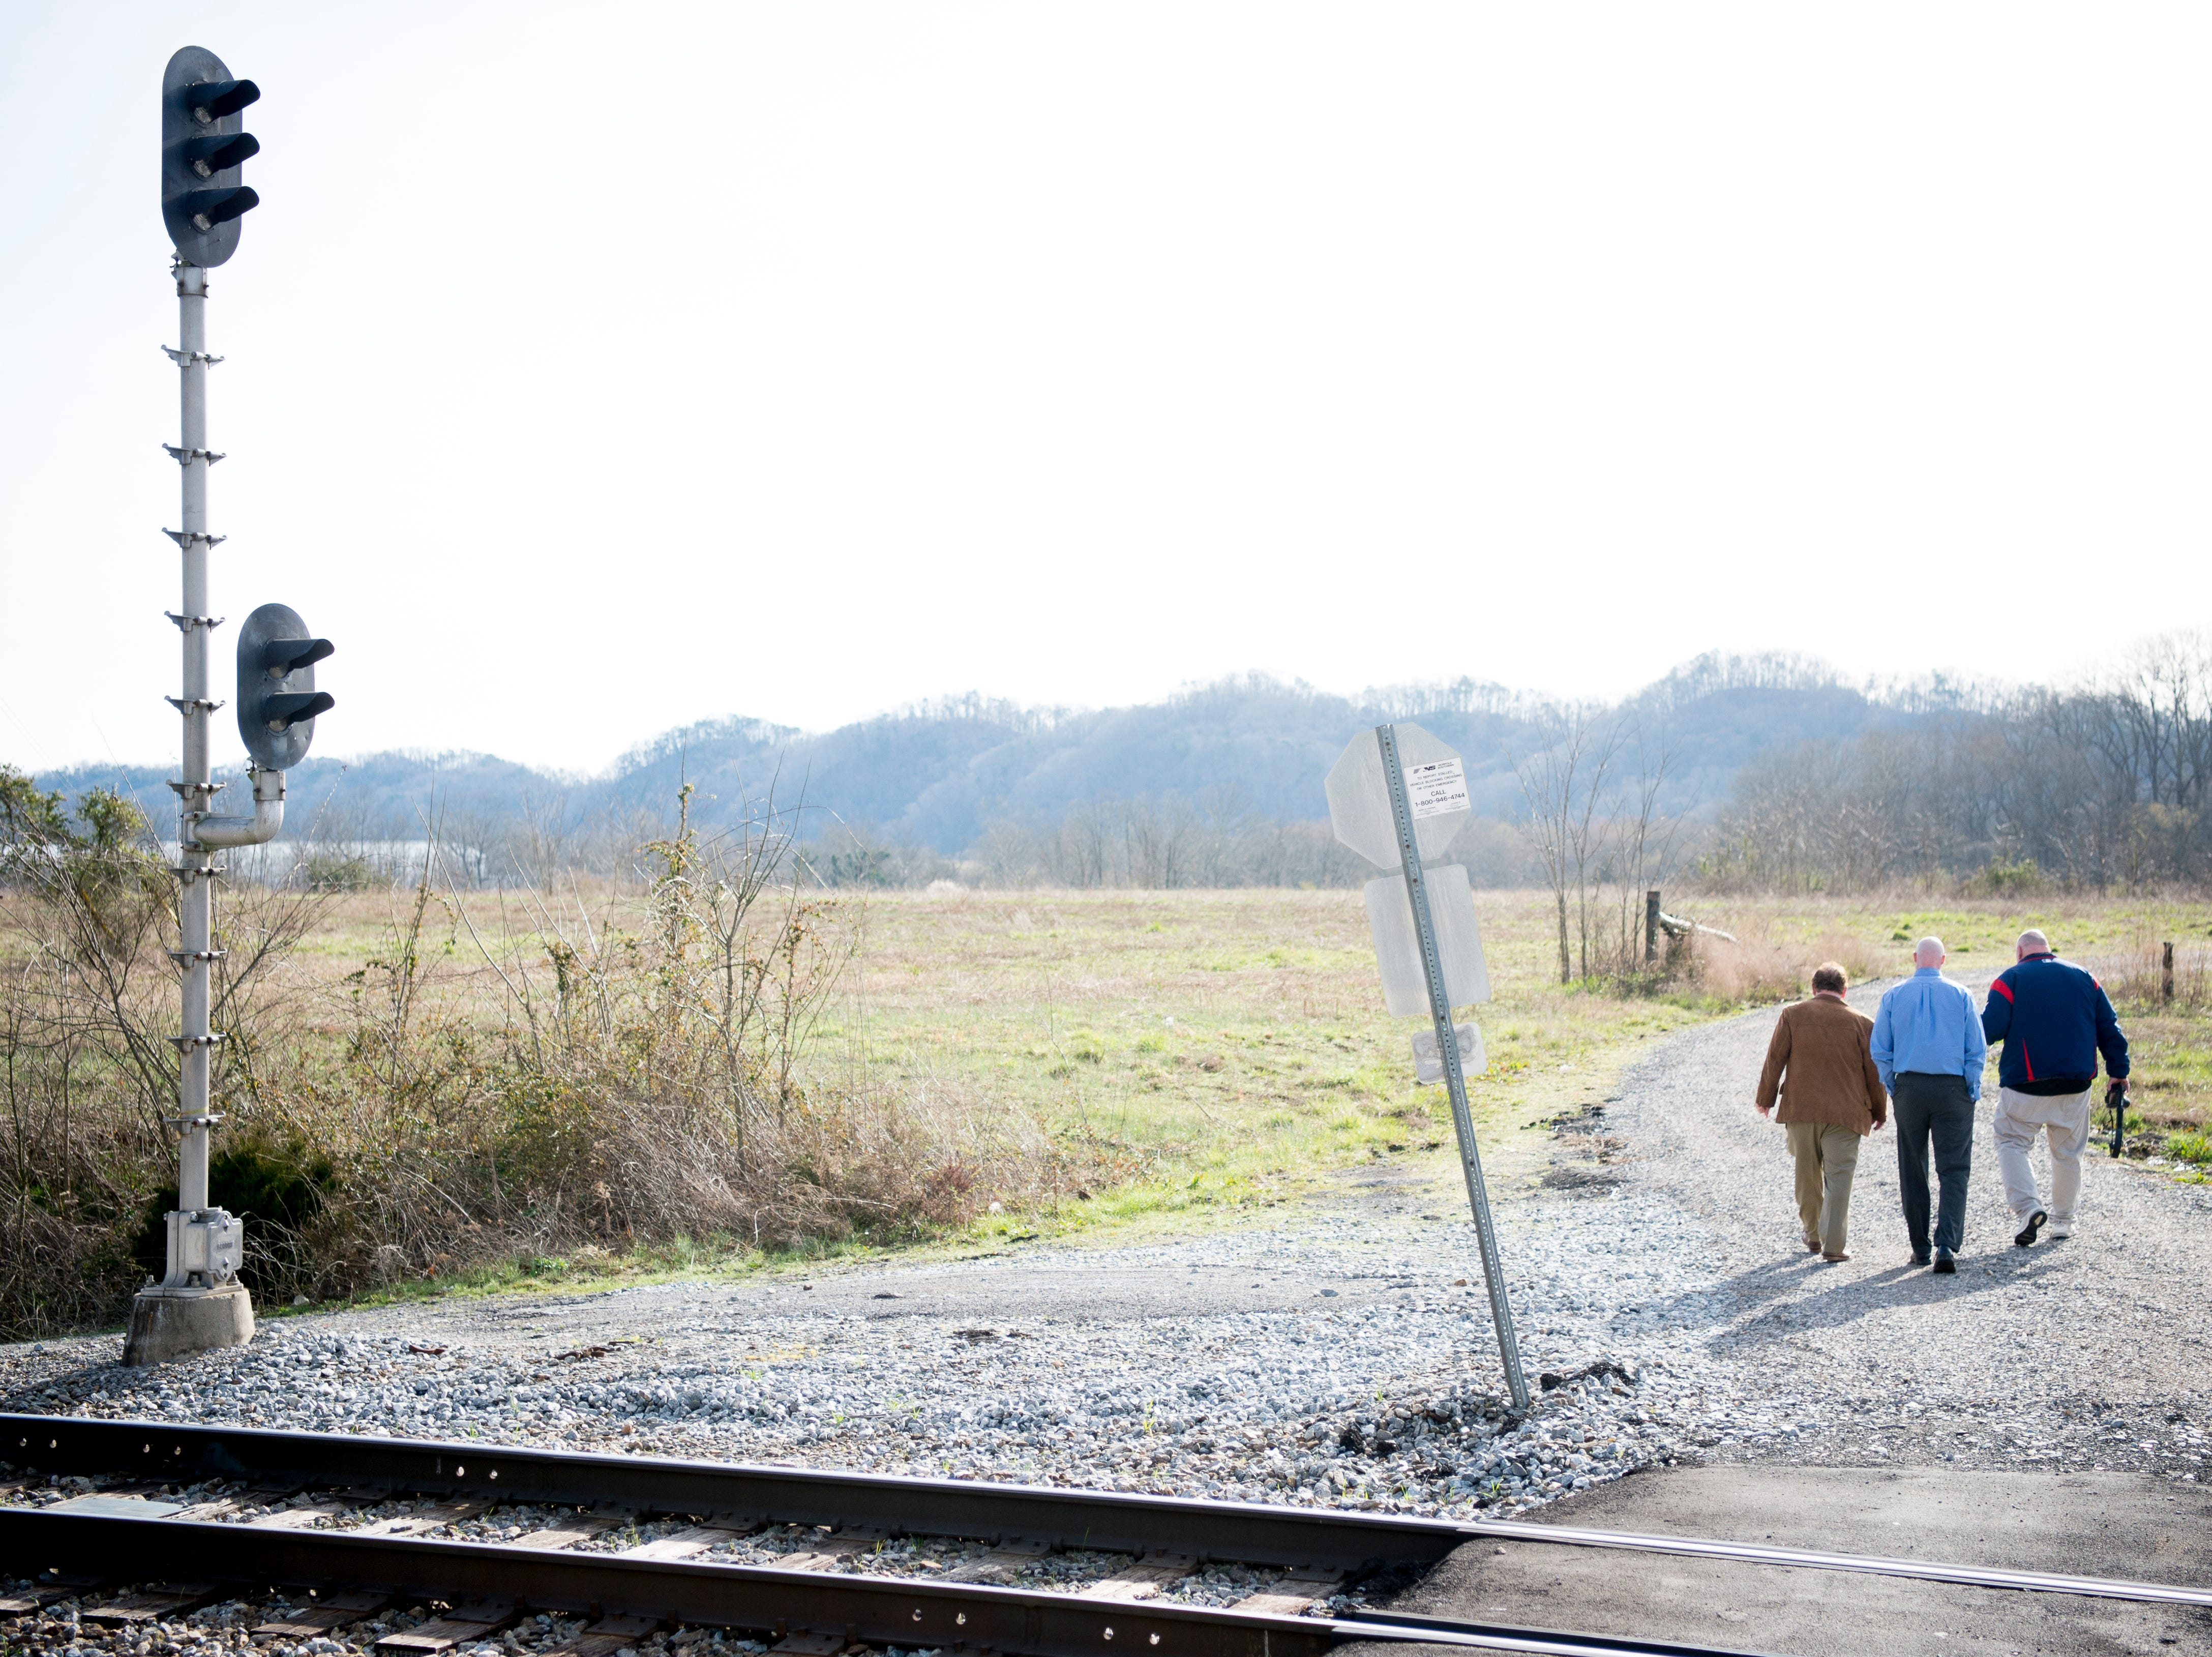 From left, Joe Hollingsworth, Mike Wallace and a reporter walk at the site of the future Aspire Park in Clinton, Tennessee on Tuesday, March 12, 2019. The Hollingsworth Foundation is looking to redevelop nearly 450 acres of land off Yarnell Road into a recreational park.